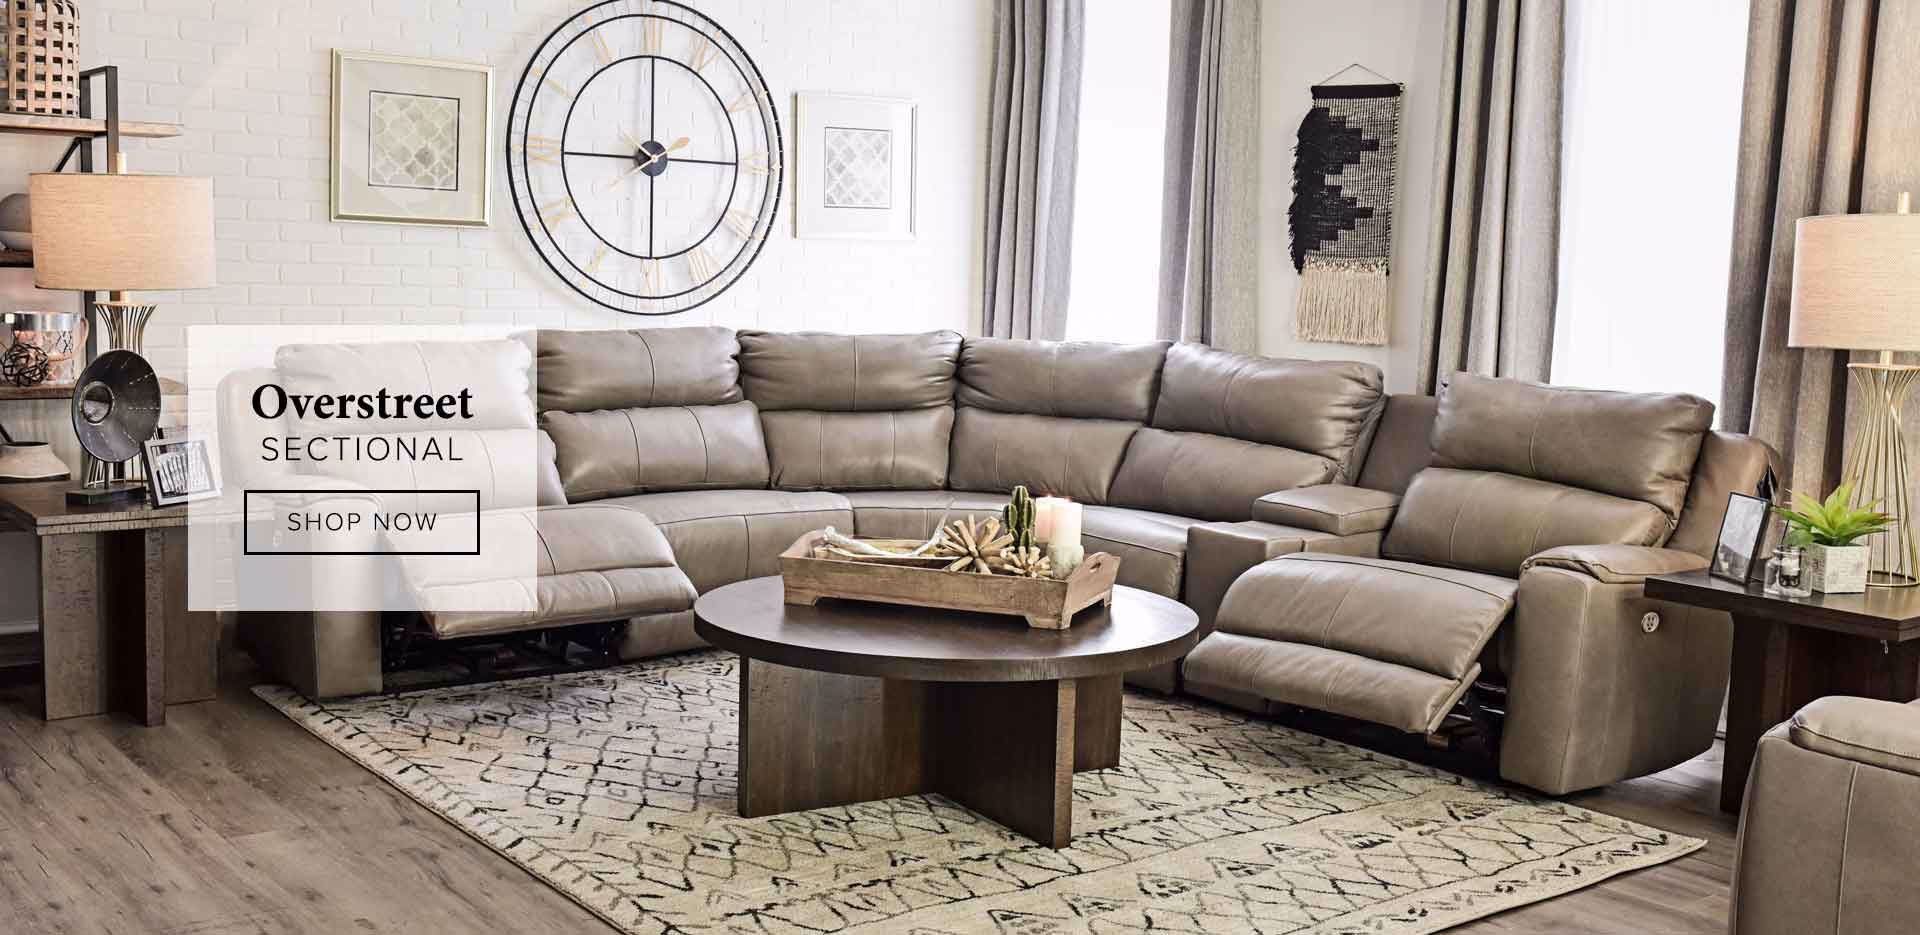 Furniture Stores Near Me With Layaway Home Zone Furniture Furniture Stores Serving Dallas Fort Worth